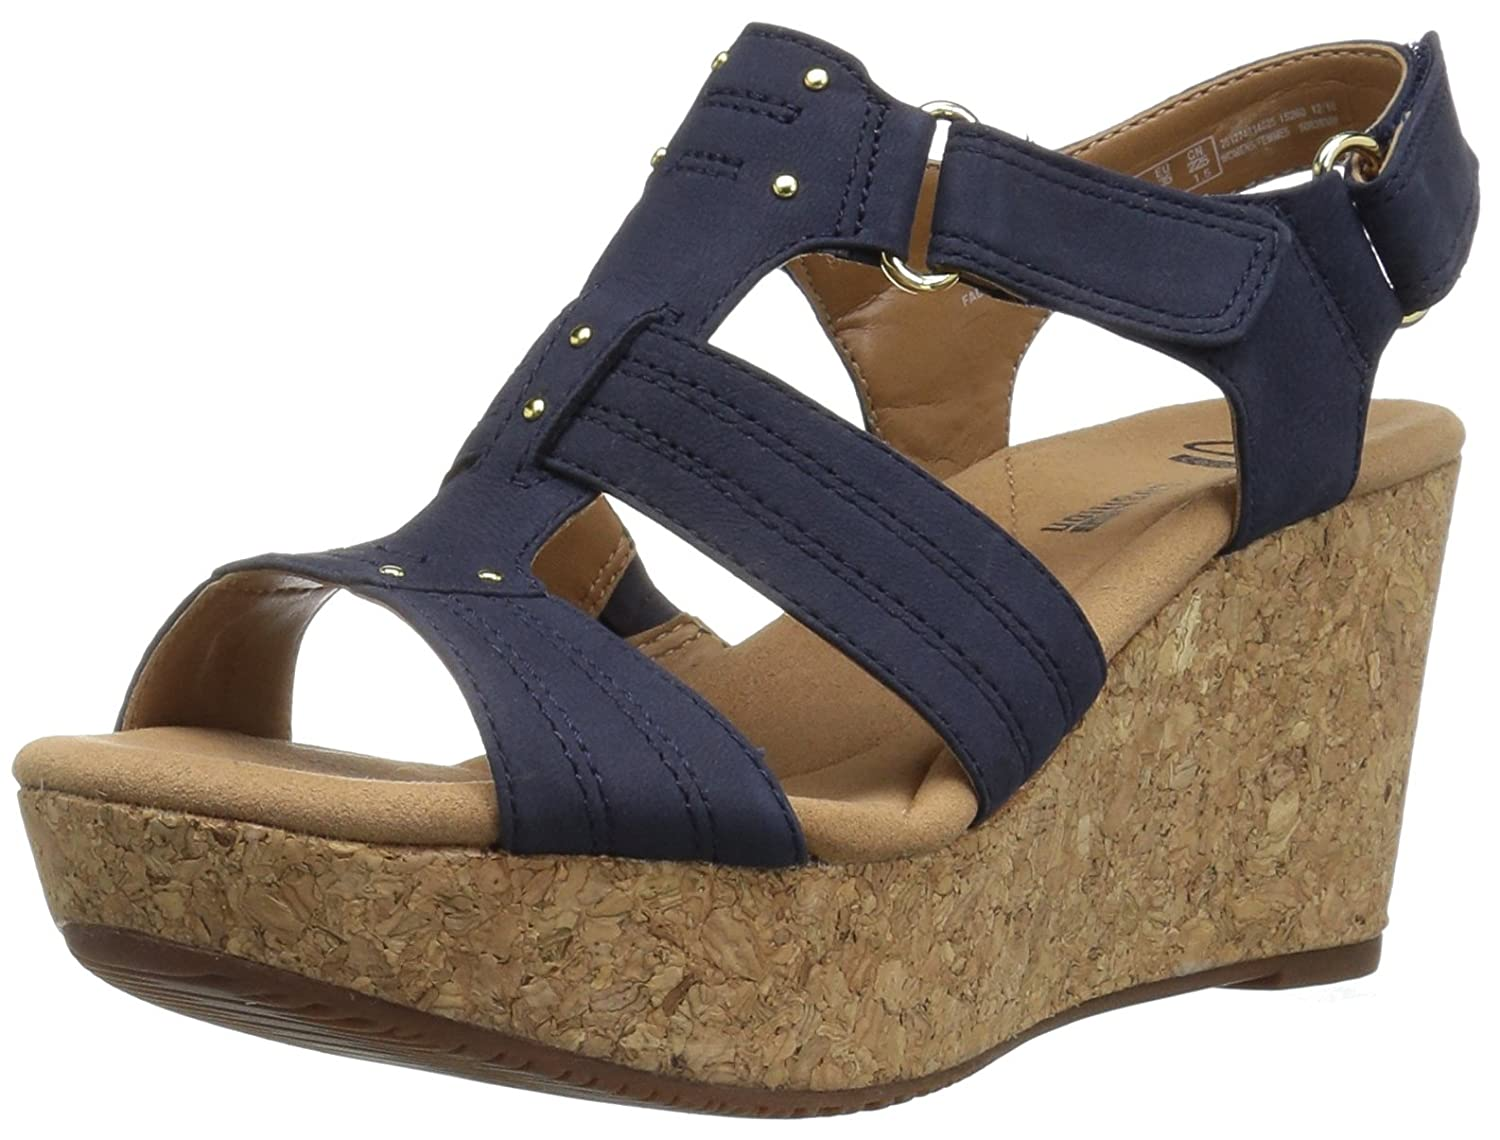 9a02282821a Clarks Women s Annadel Orchid Wedge Sandal